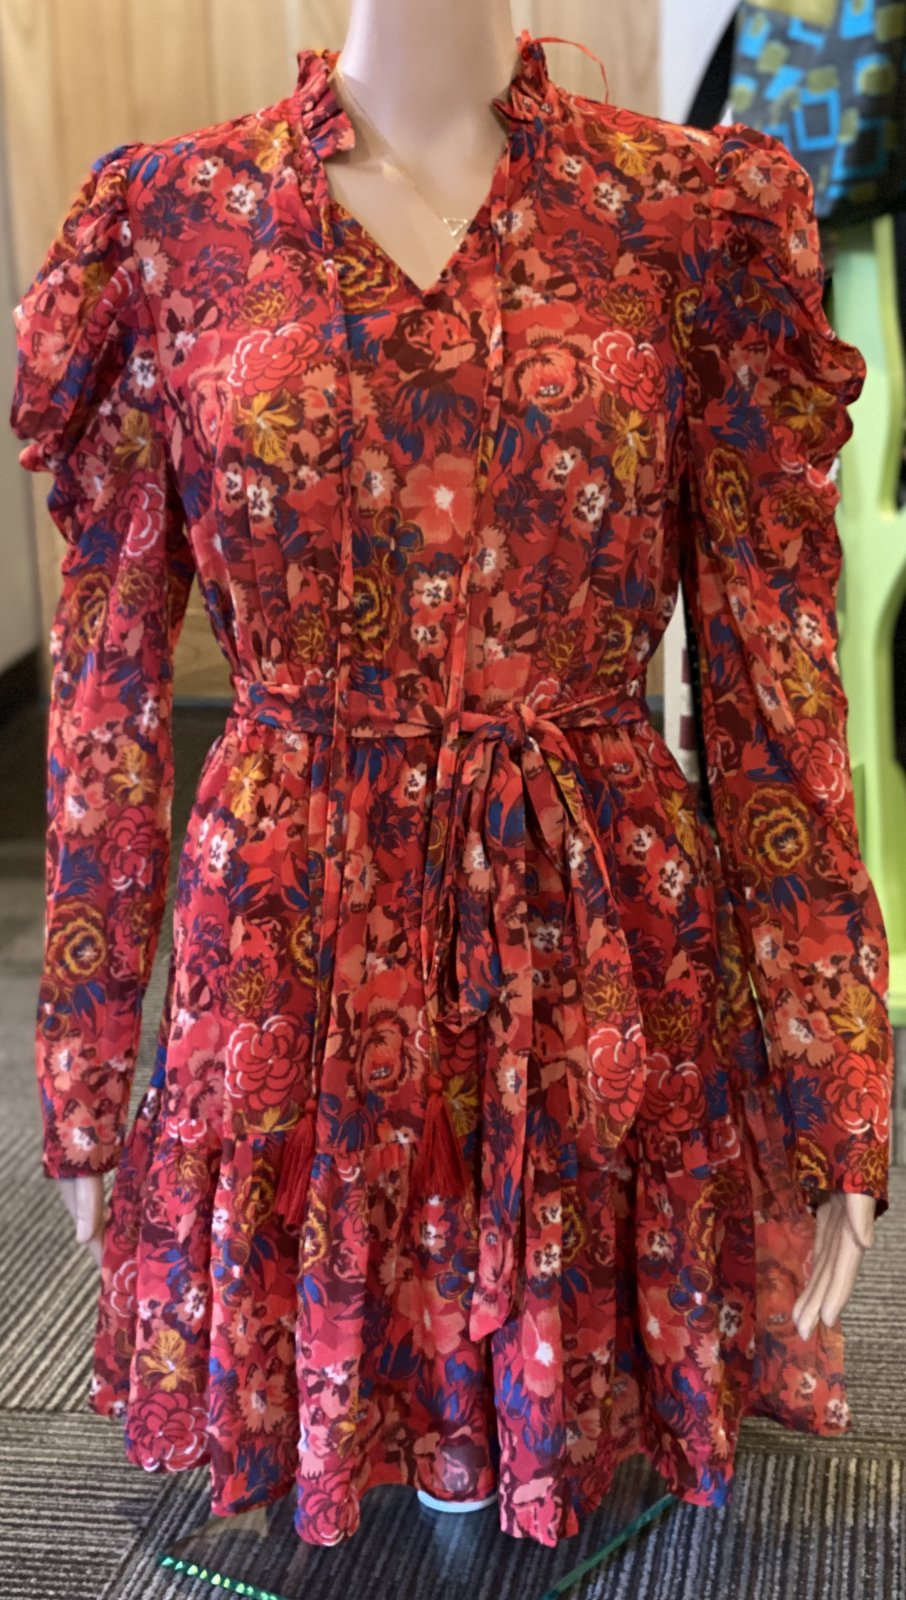 A calin flying tomato red floral dress